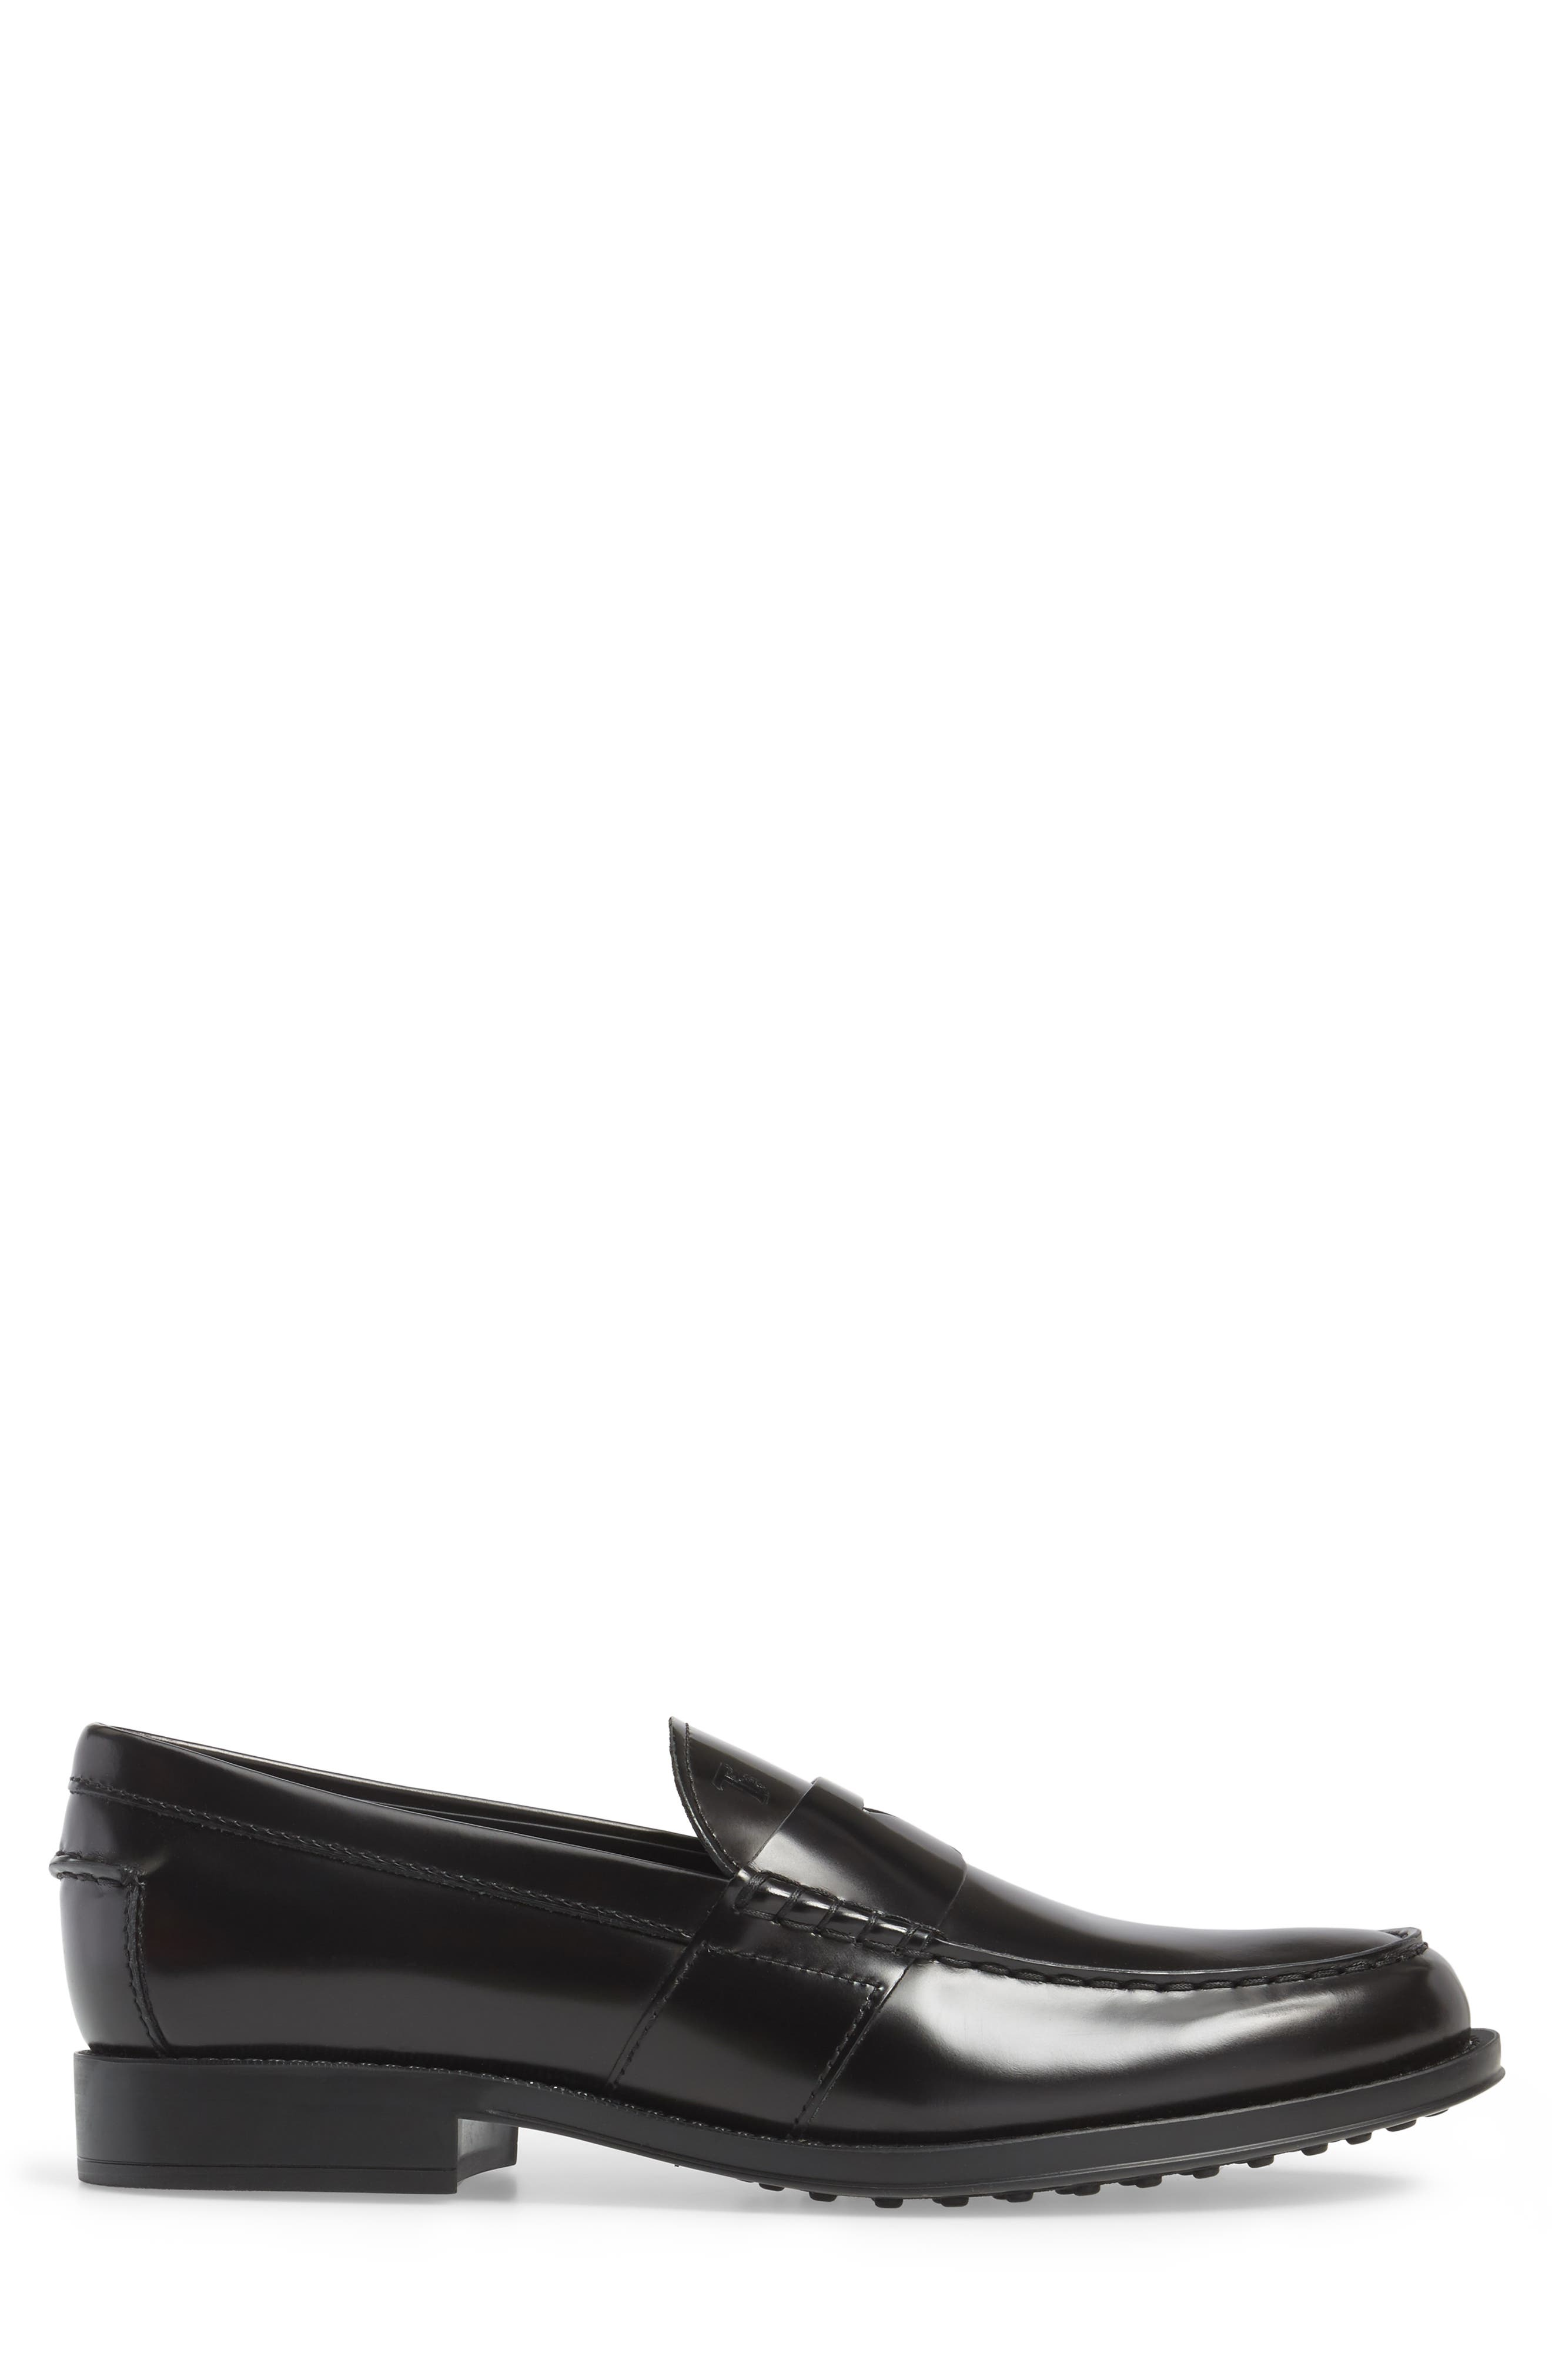 Tods Penny Loafer,                             Alternate thumbnail 3, color,                             001